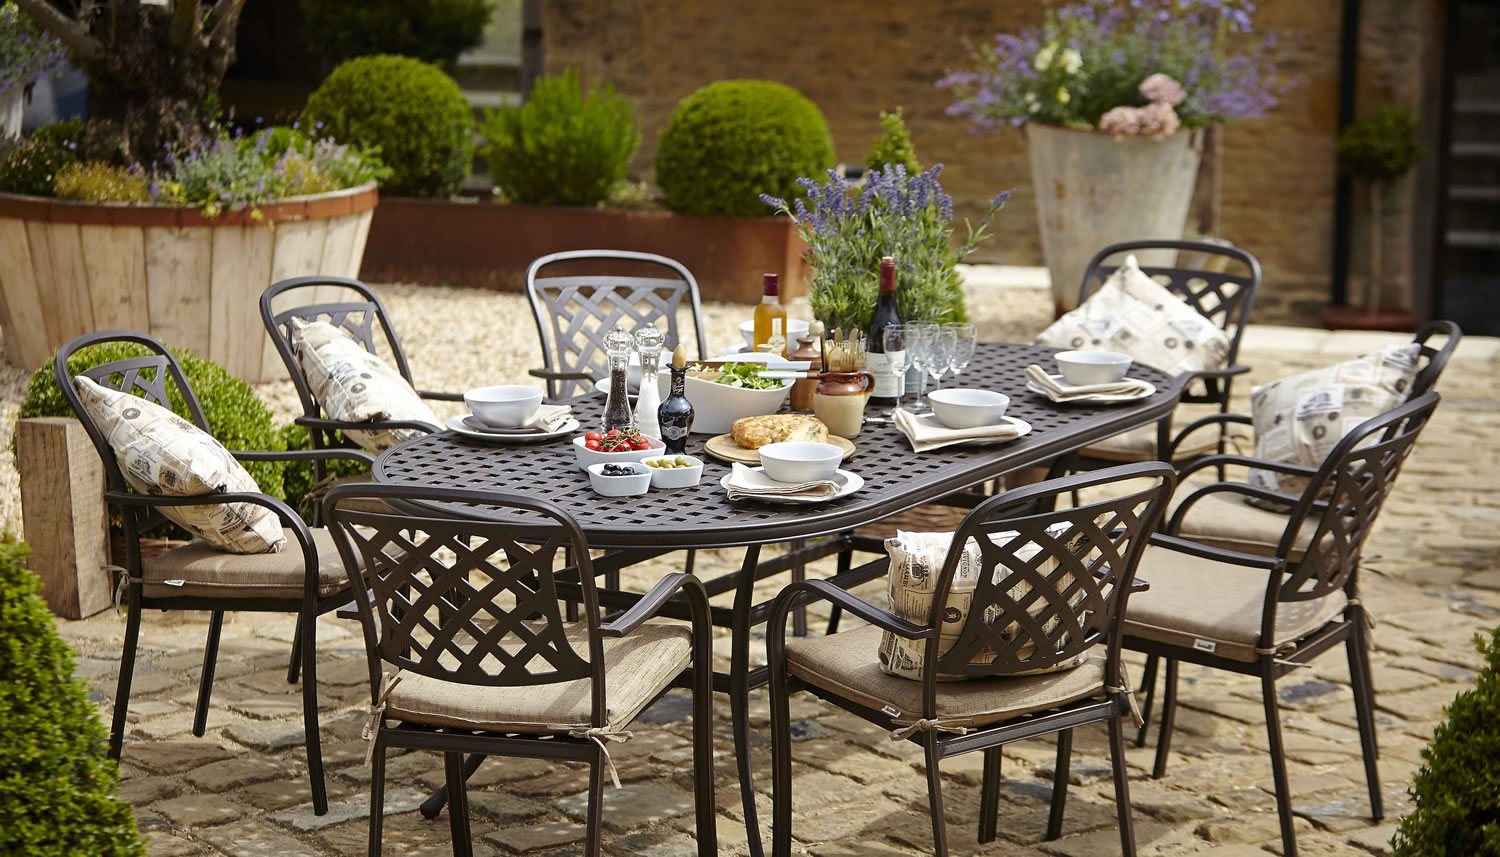 Berkeley cast aluminium oval 8 seater garden dining set for Gardening 4 less reviews